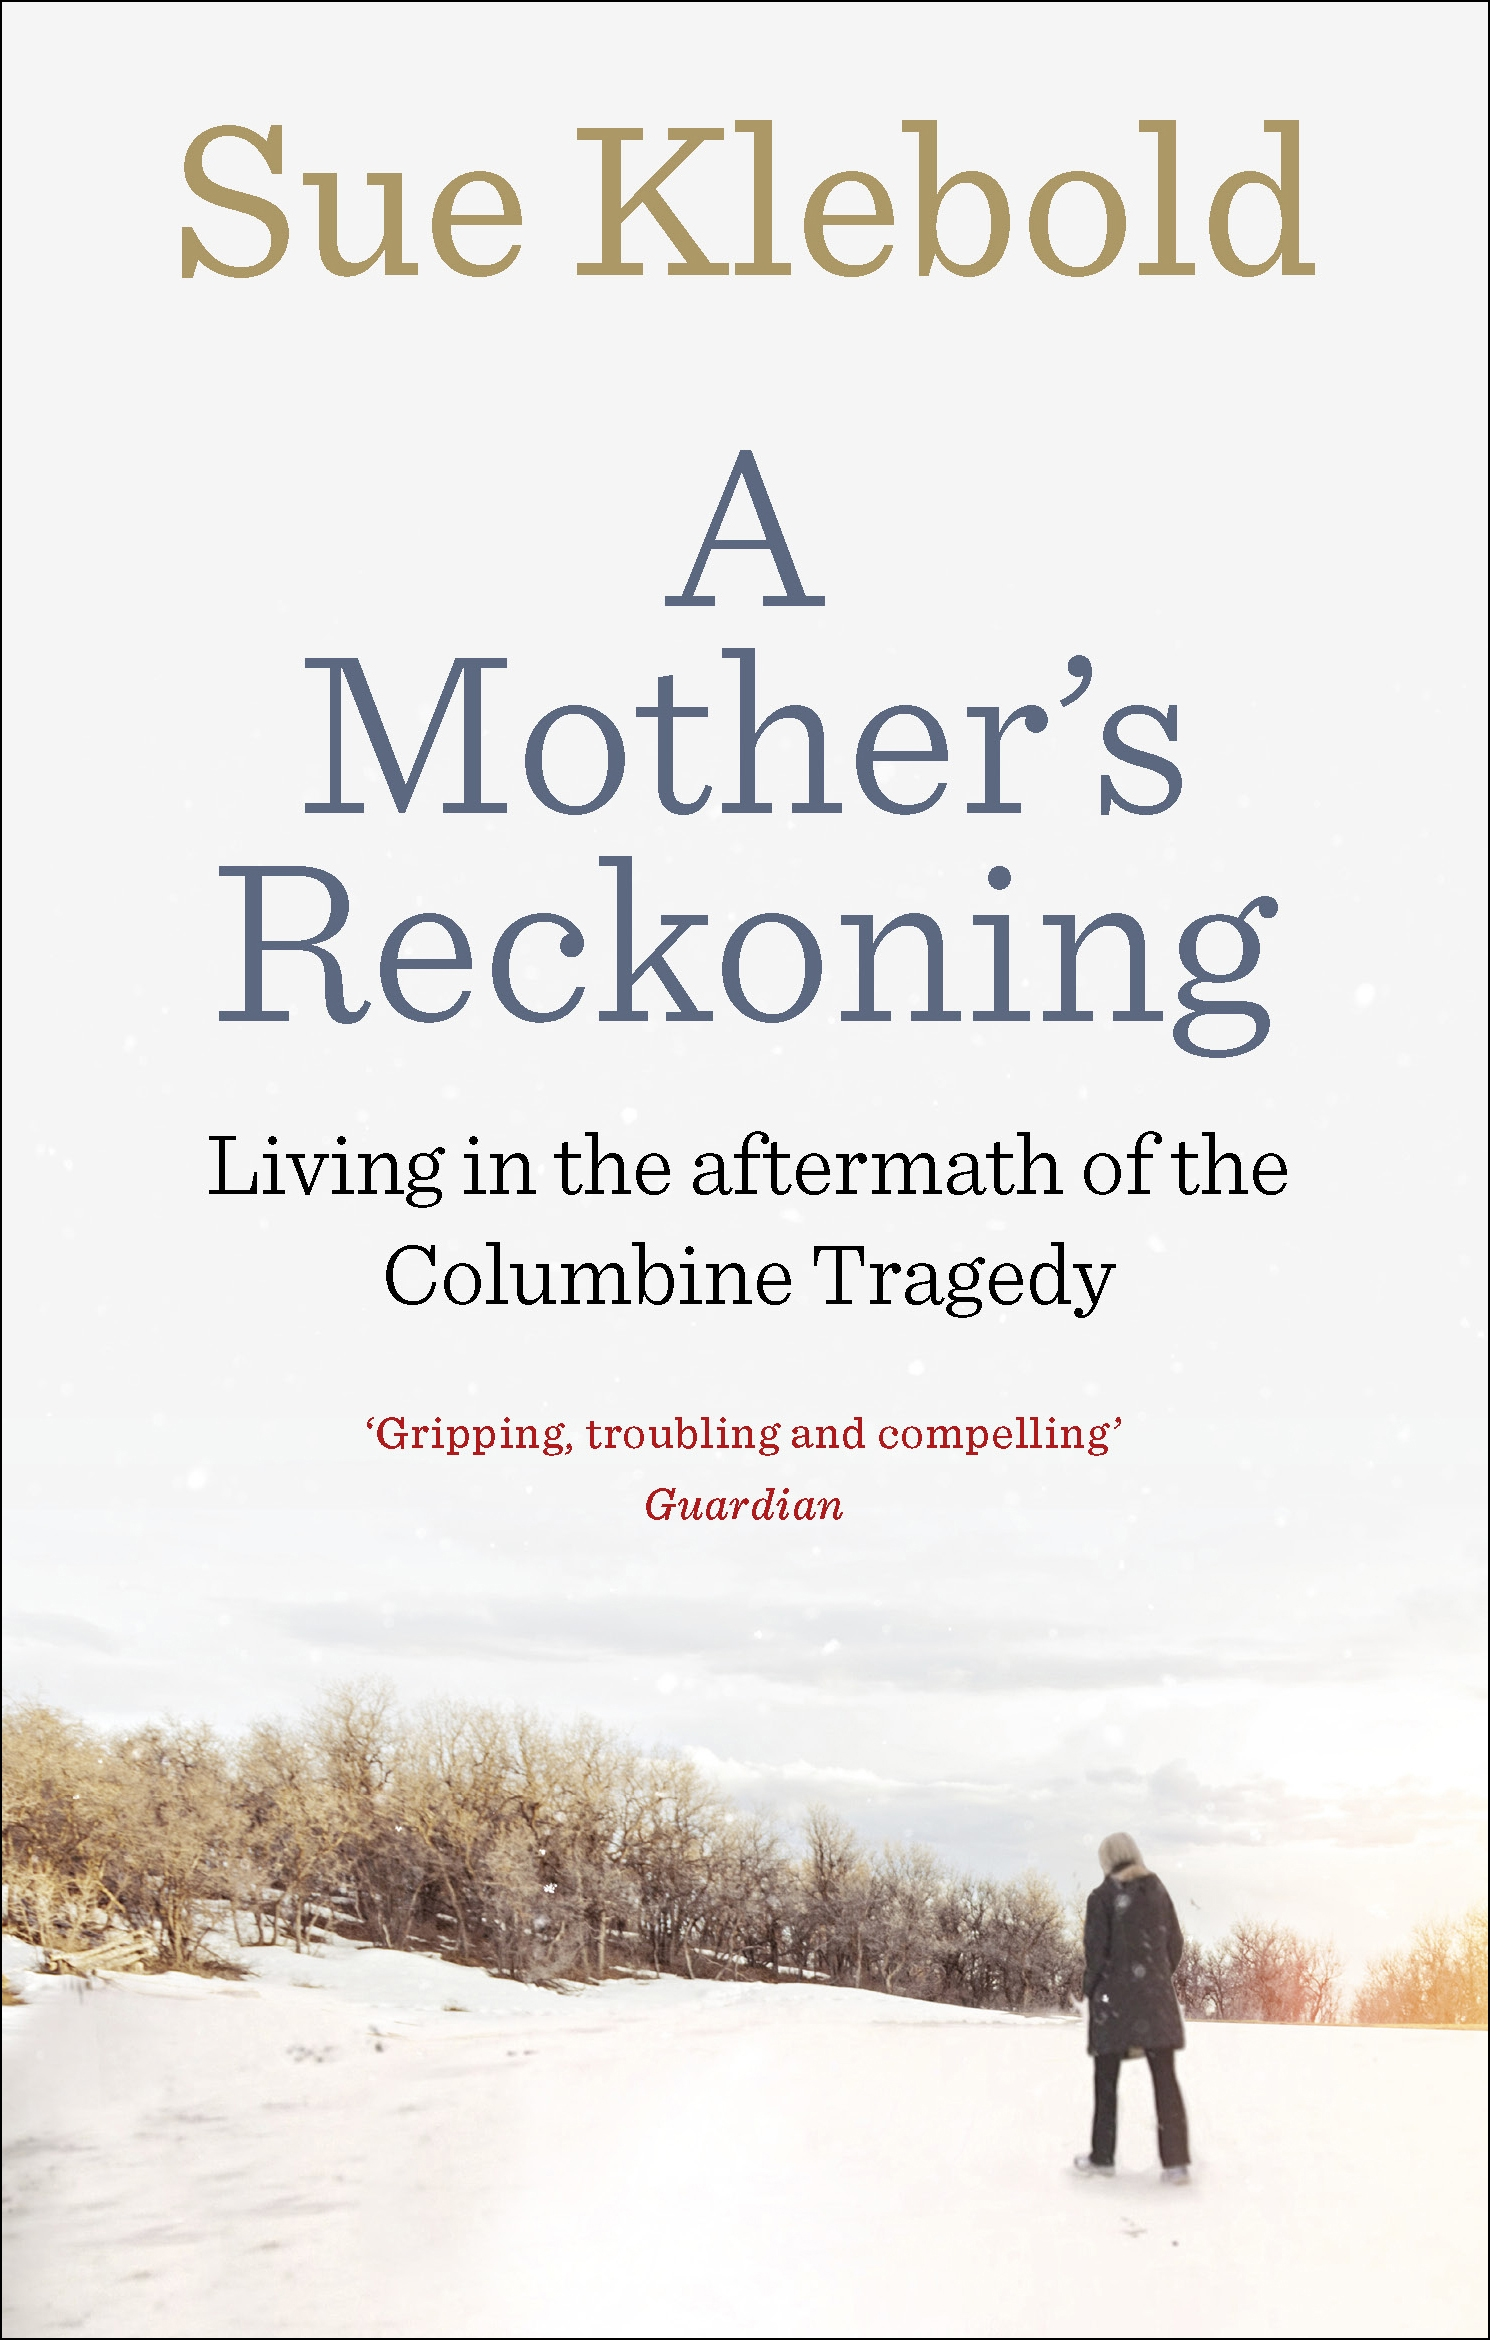 A Mother's Reckoning